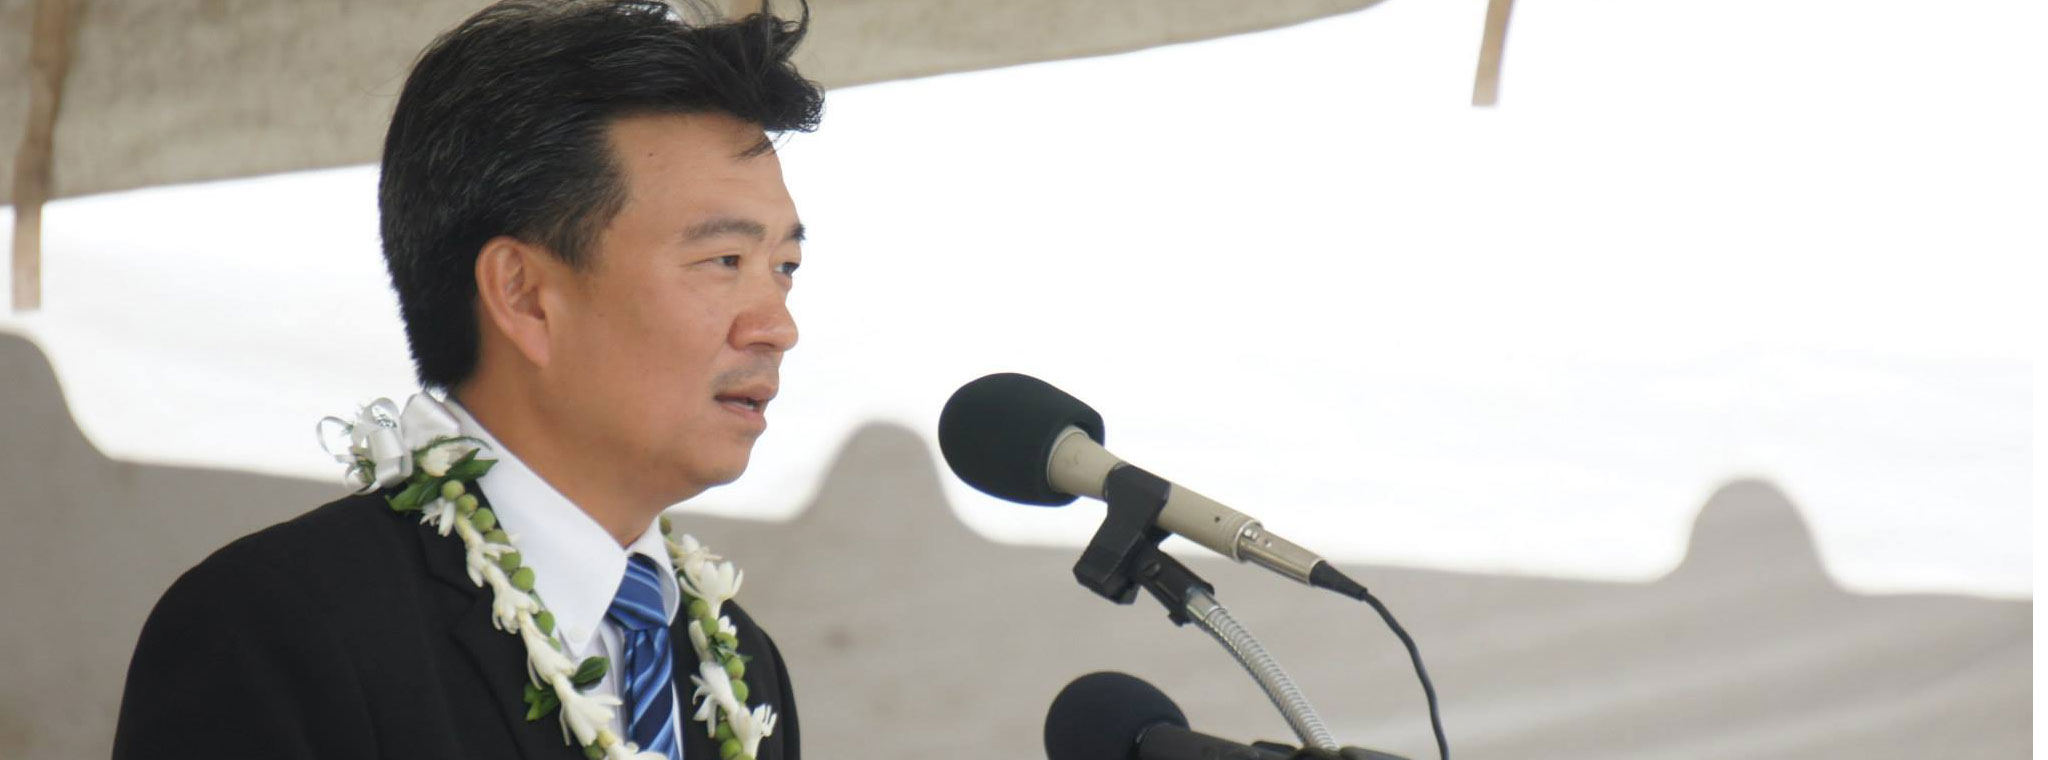 Acting Govenor Tsutsui delivers Veterans Day address